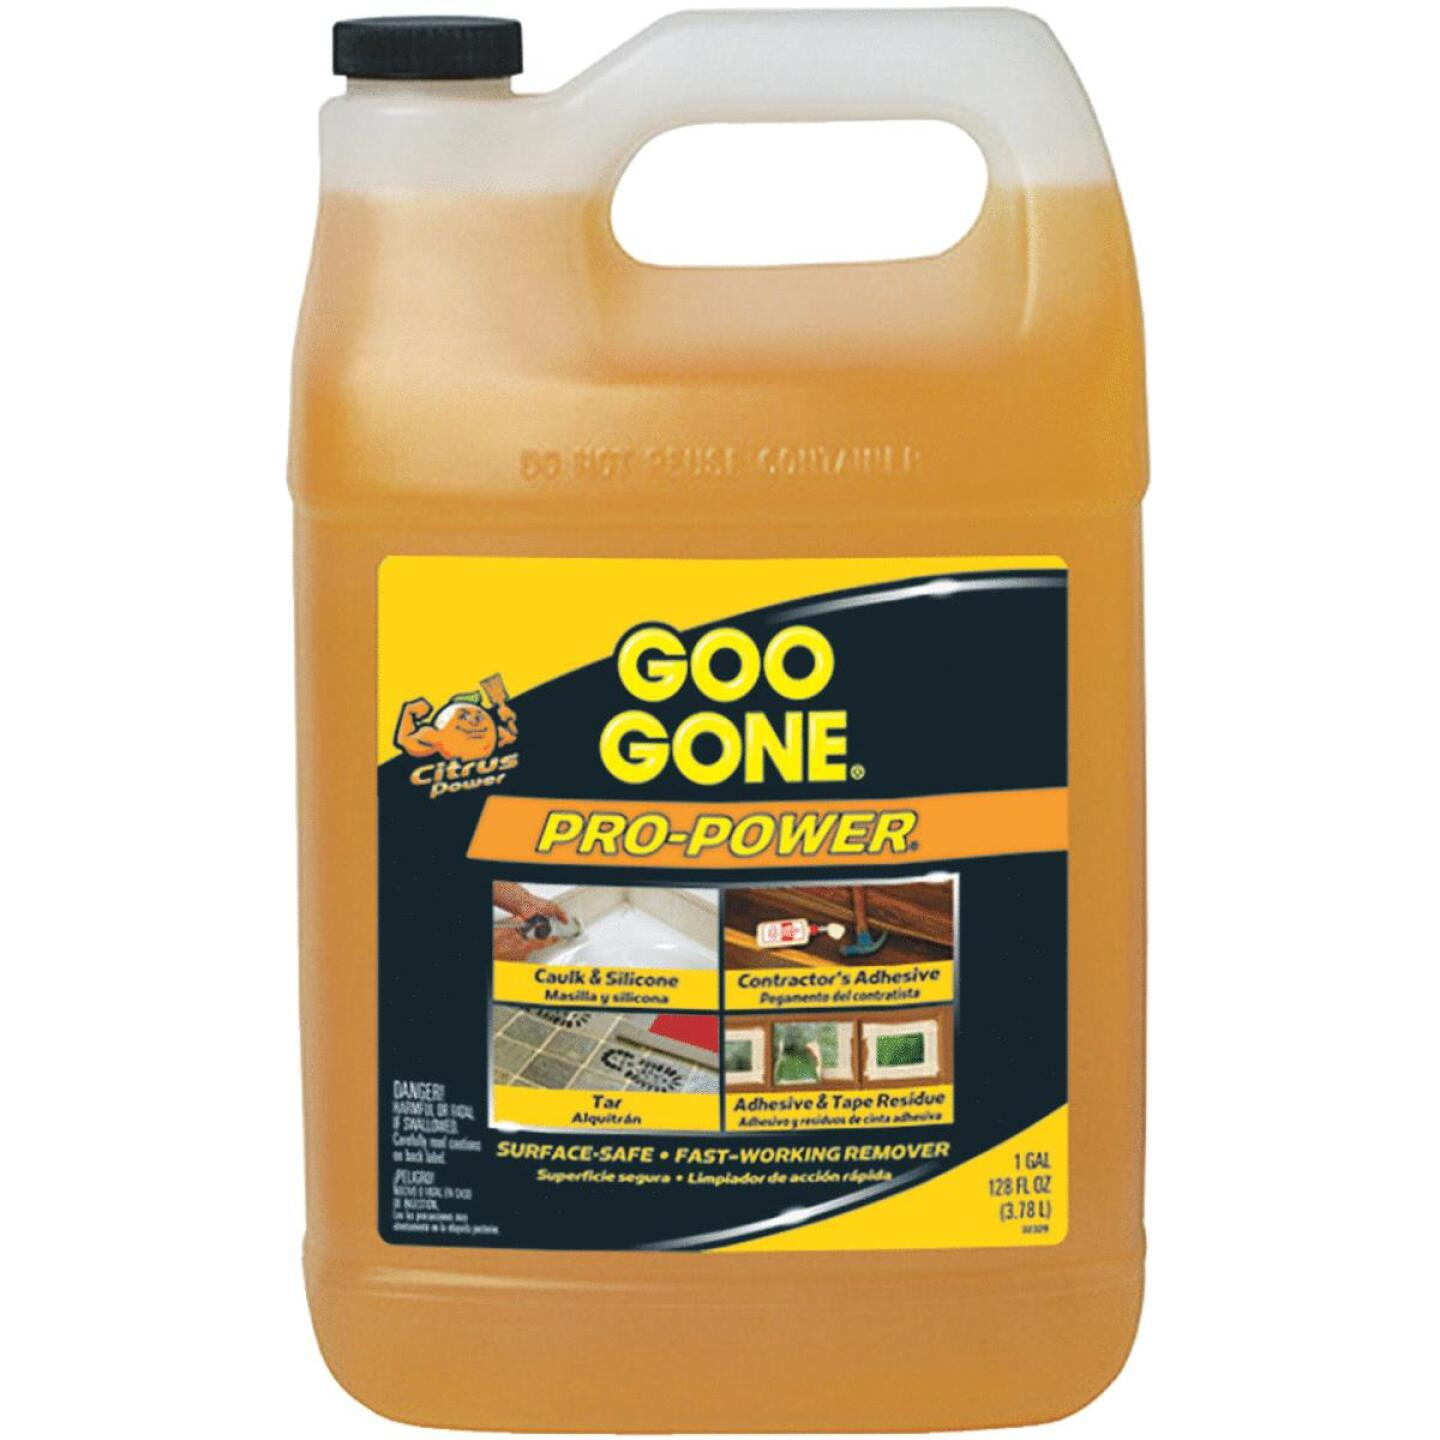 Goo Gone 1 Gal. Pro-Power Adhesive Remover Image 258